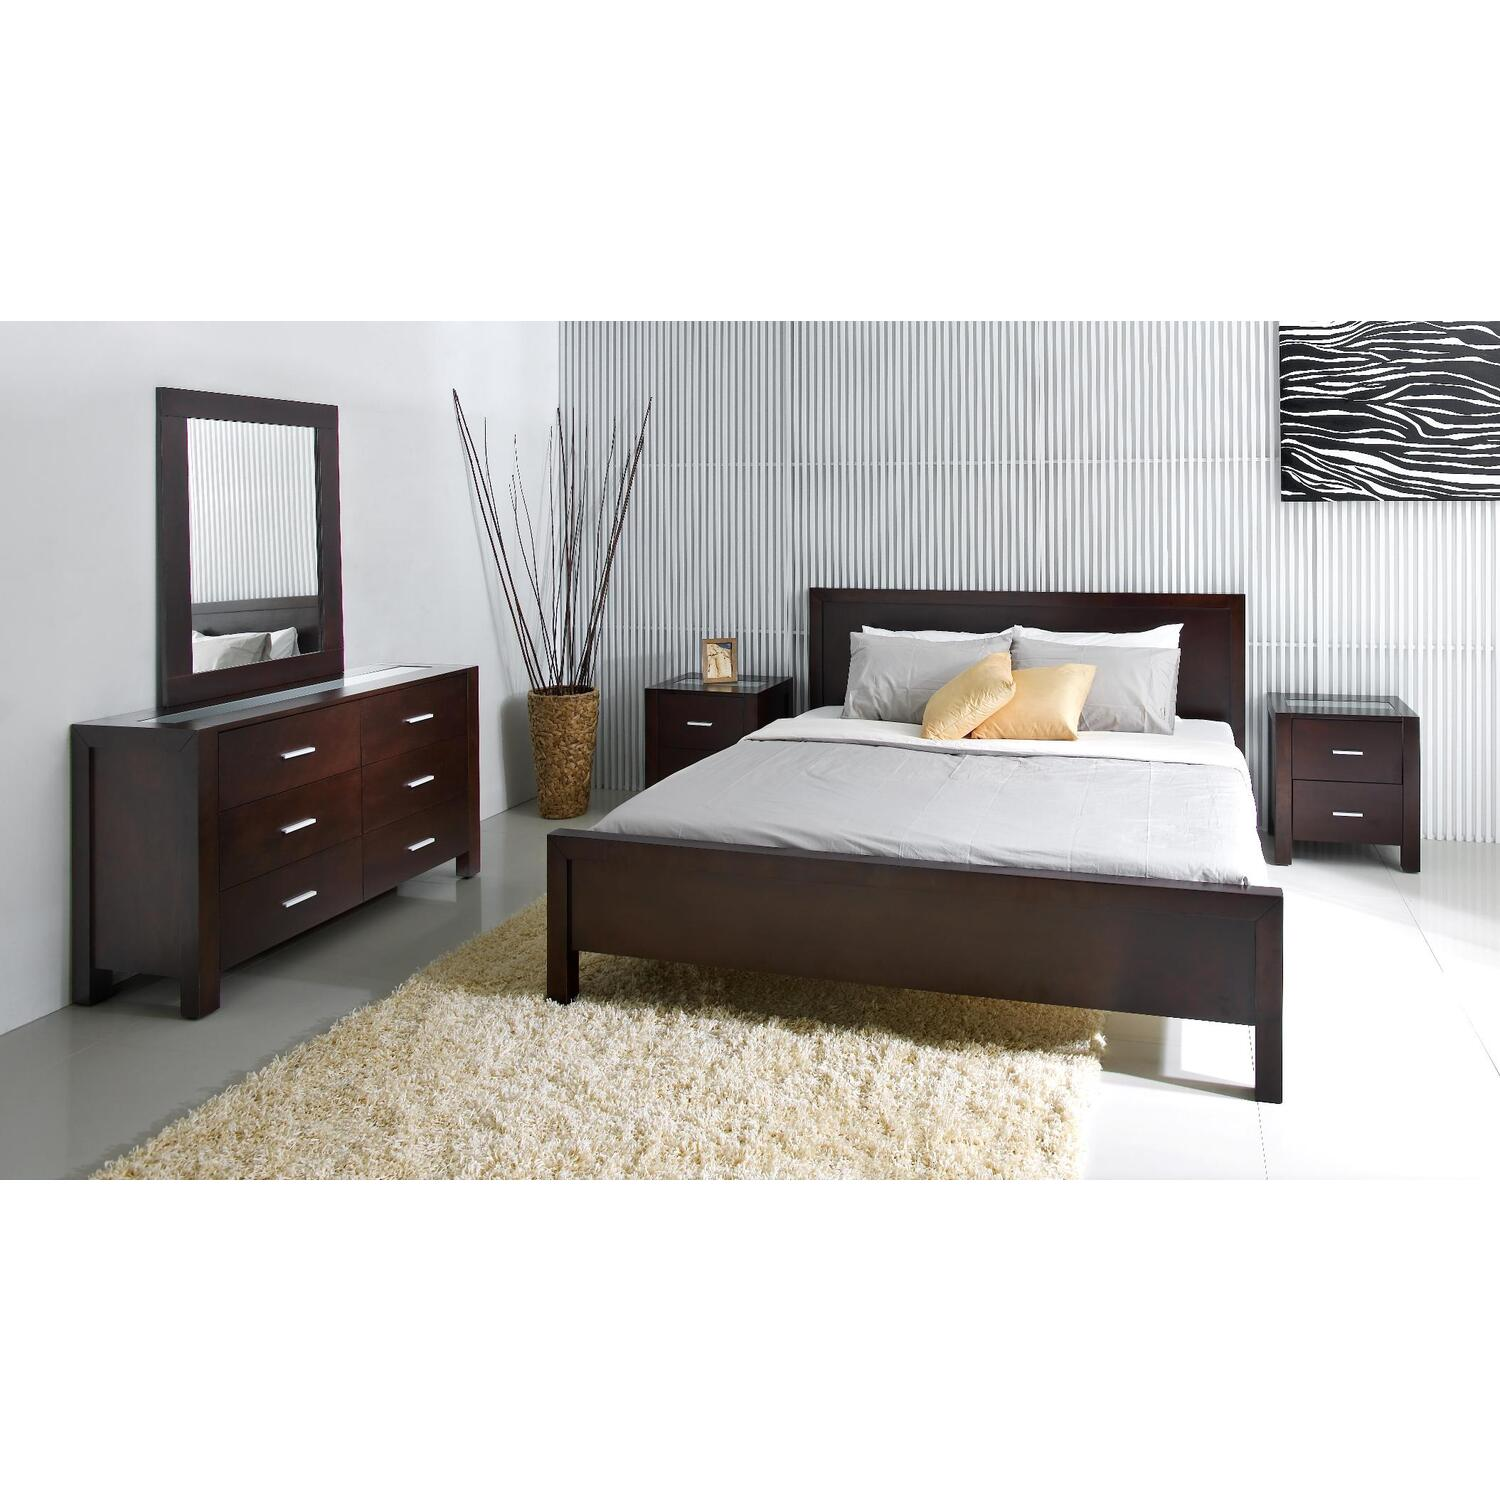 Abbyson living 5pc cal king bedroom set by oj commerce - California king bedroom furniture ...